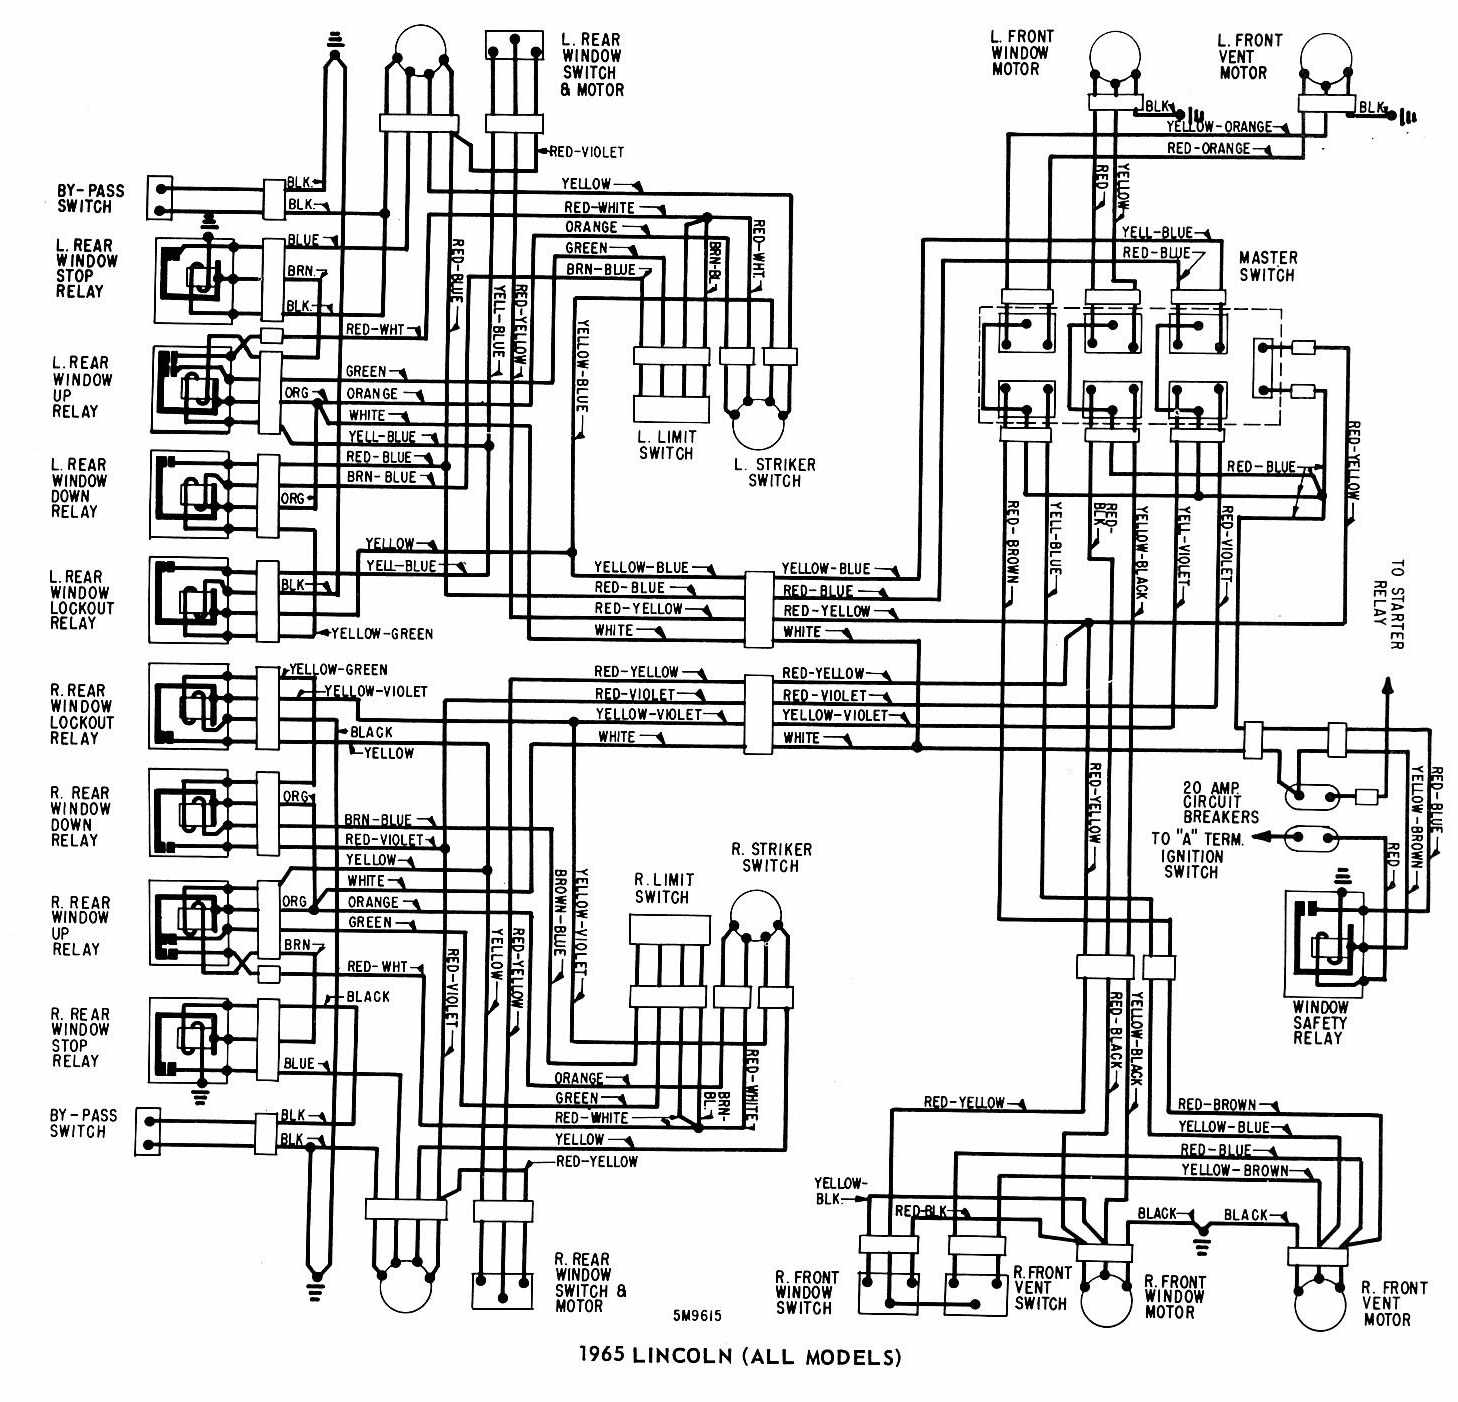 Lincoln All Models 1965 Windows Wiring further How To Properly Wire Your Pmgr Mini Starter Ford Bronco Forum With Regard To Ford Starter Solenoid Wiring Diagram further Fuel Gauge Wiring Diagram furthermore Catalog3 as well Showthread. on 1967 corvette wiring diagram